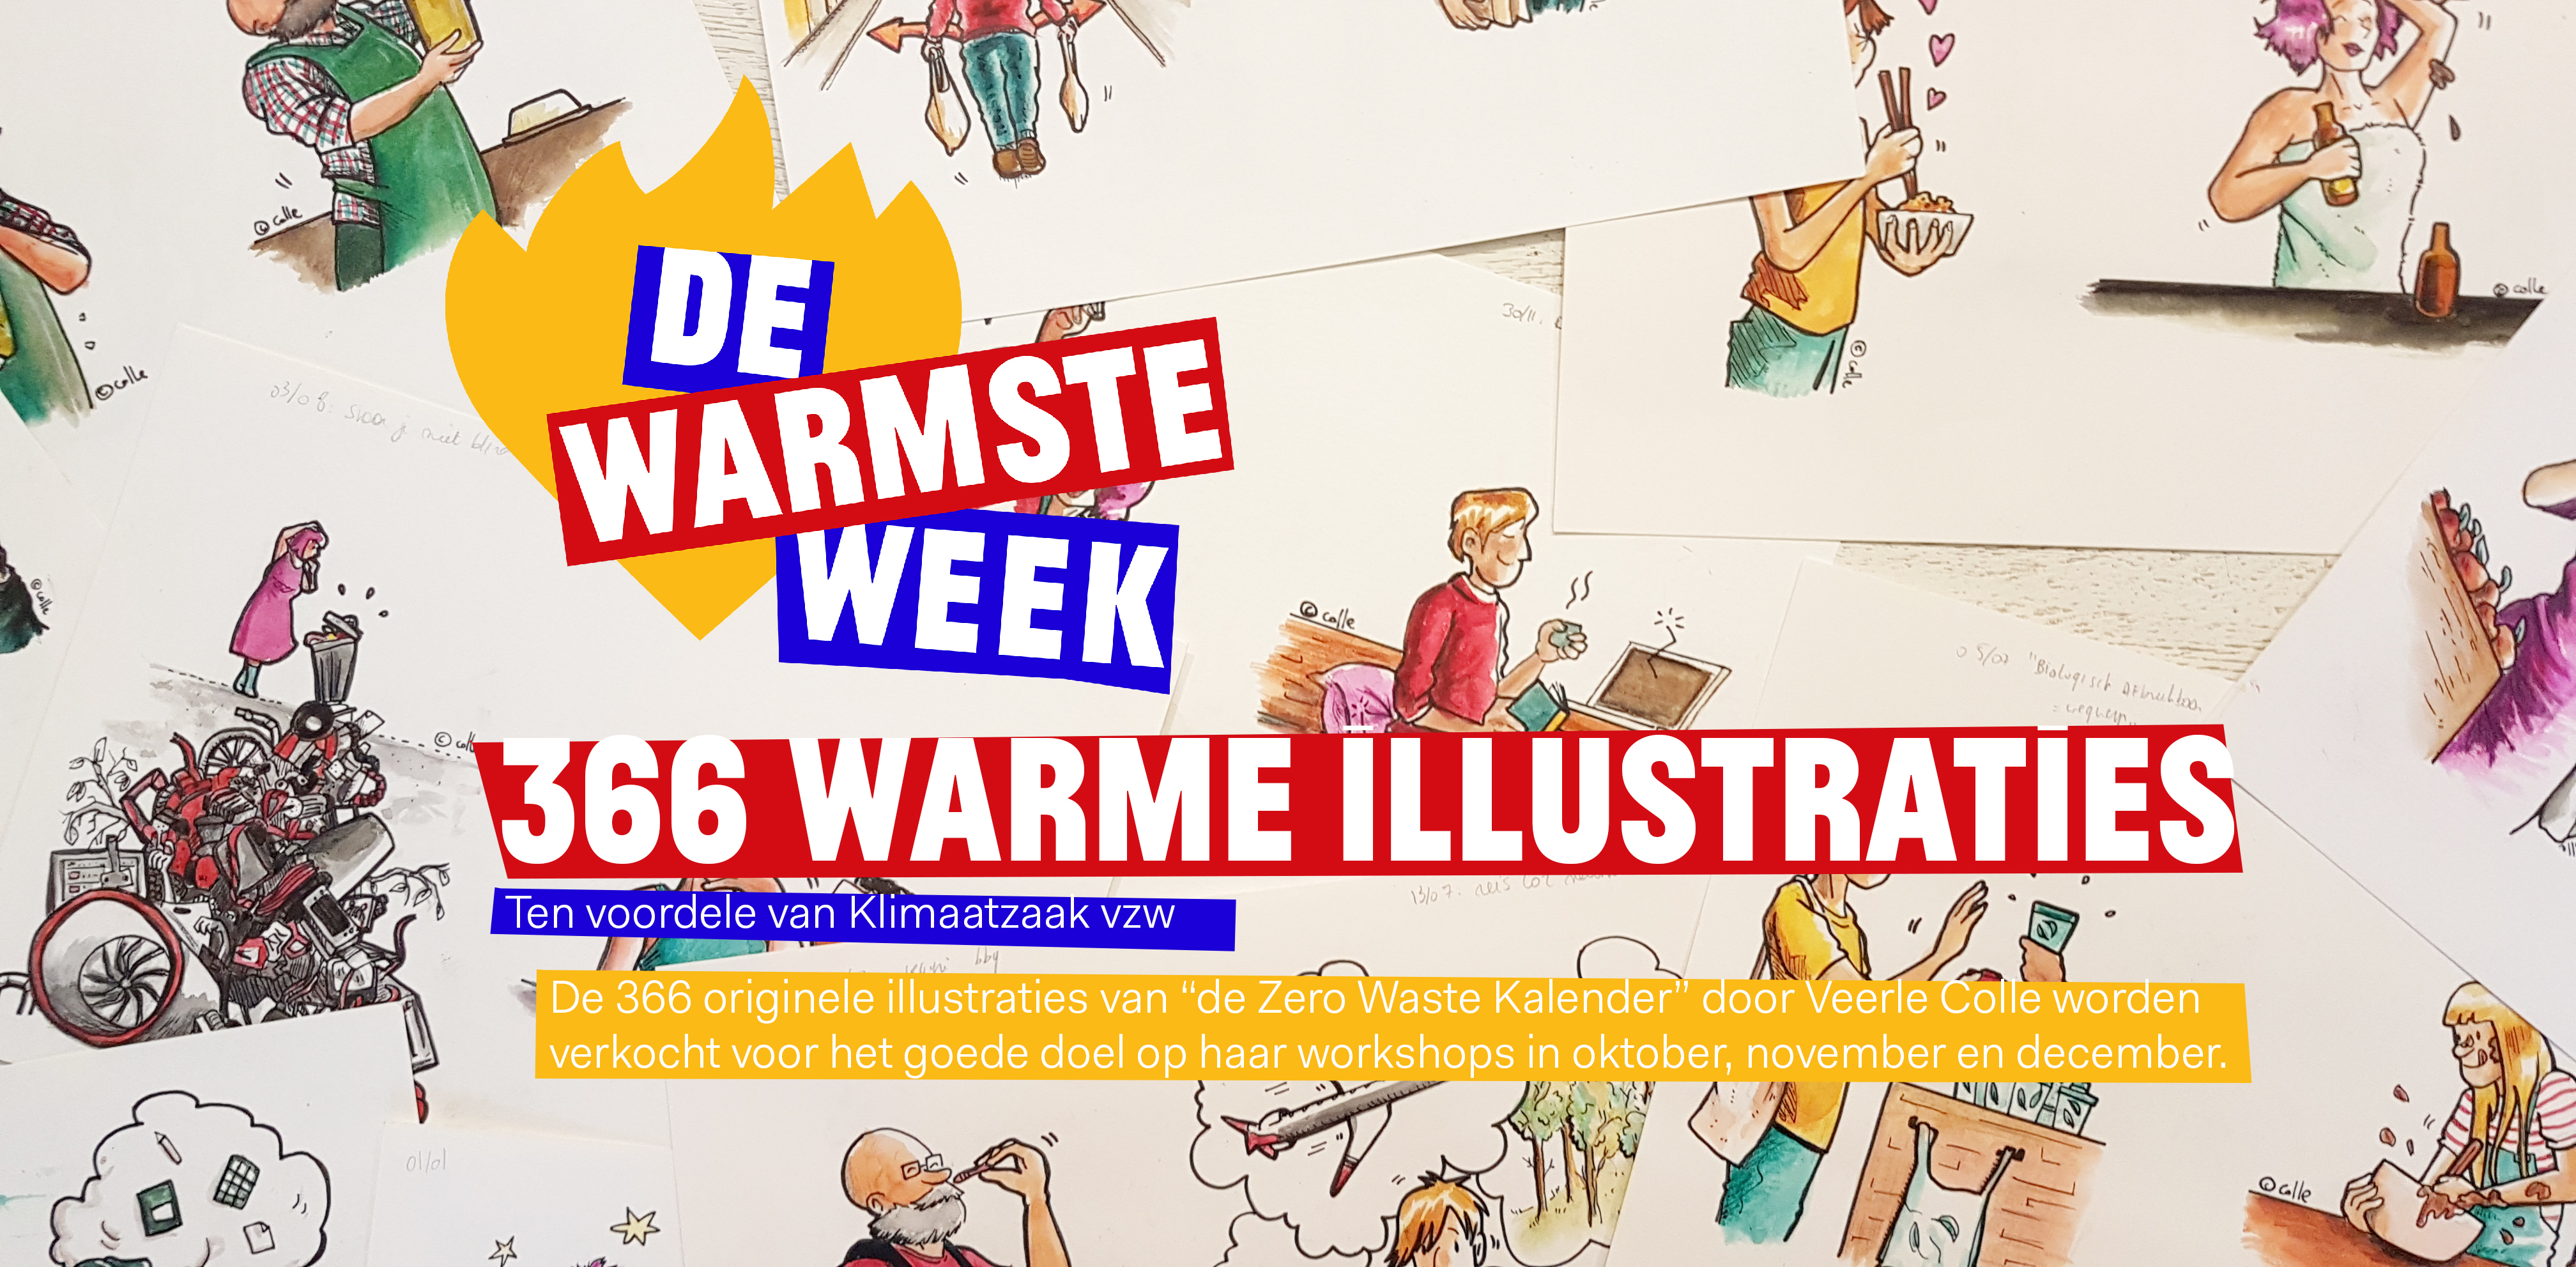 366 warme illustraties logo